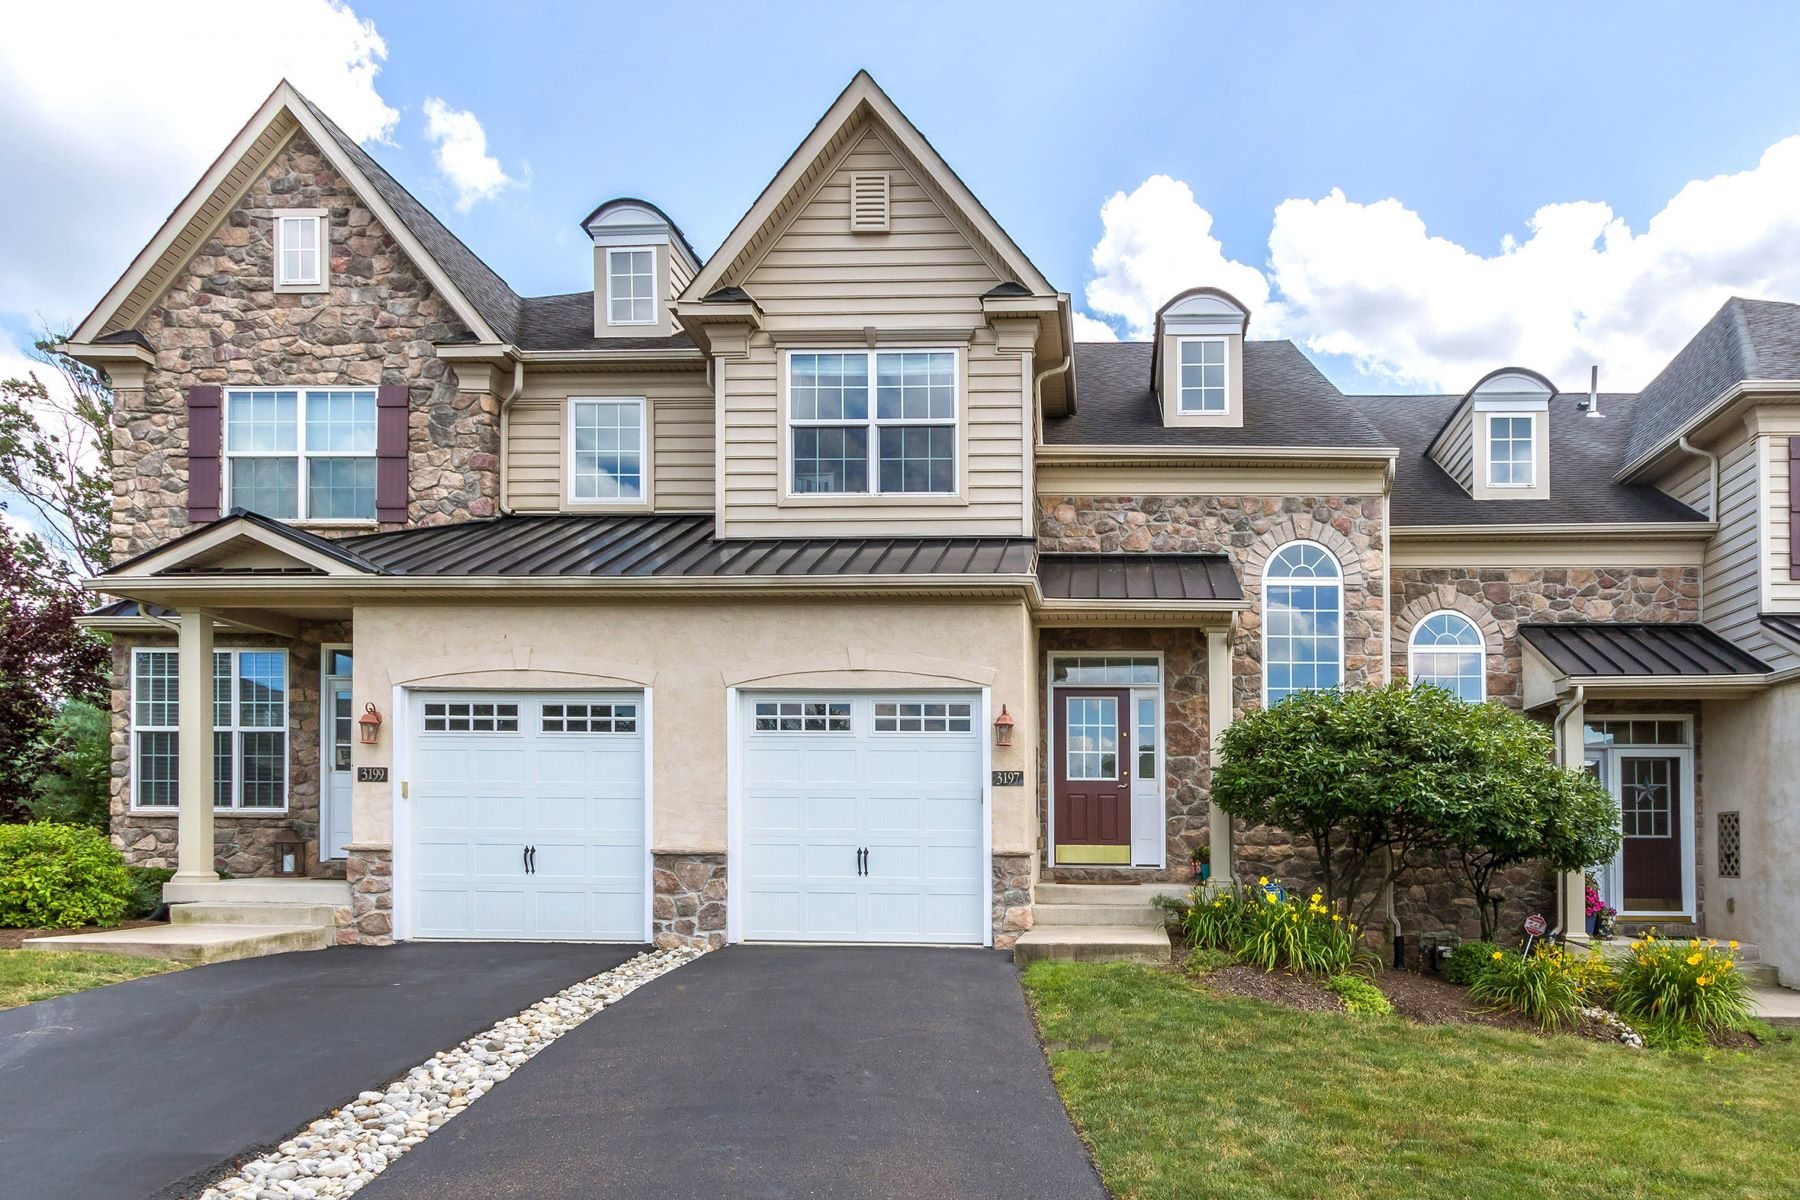 townhouses for Sale at 3197 MEADOW VIEW CIR Furlong, Pennsylvania 18925 United States